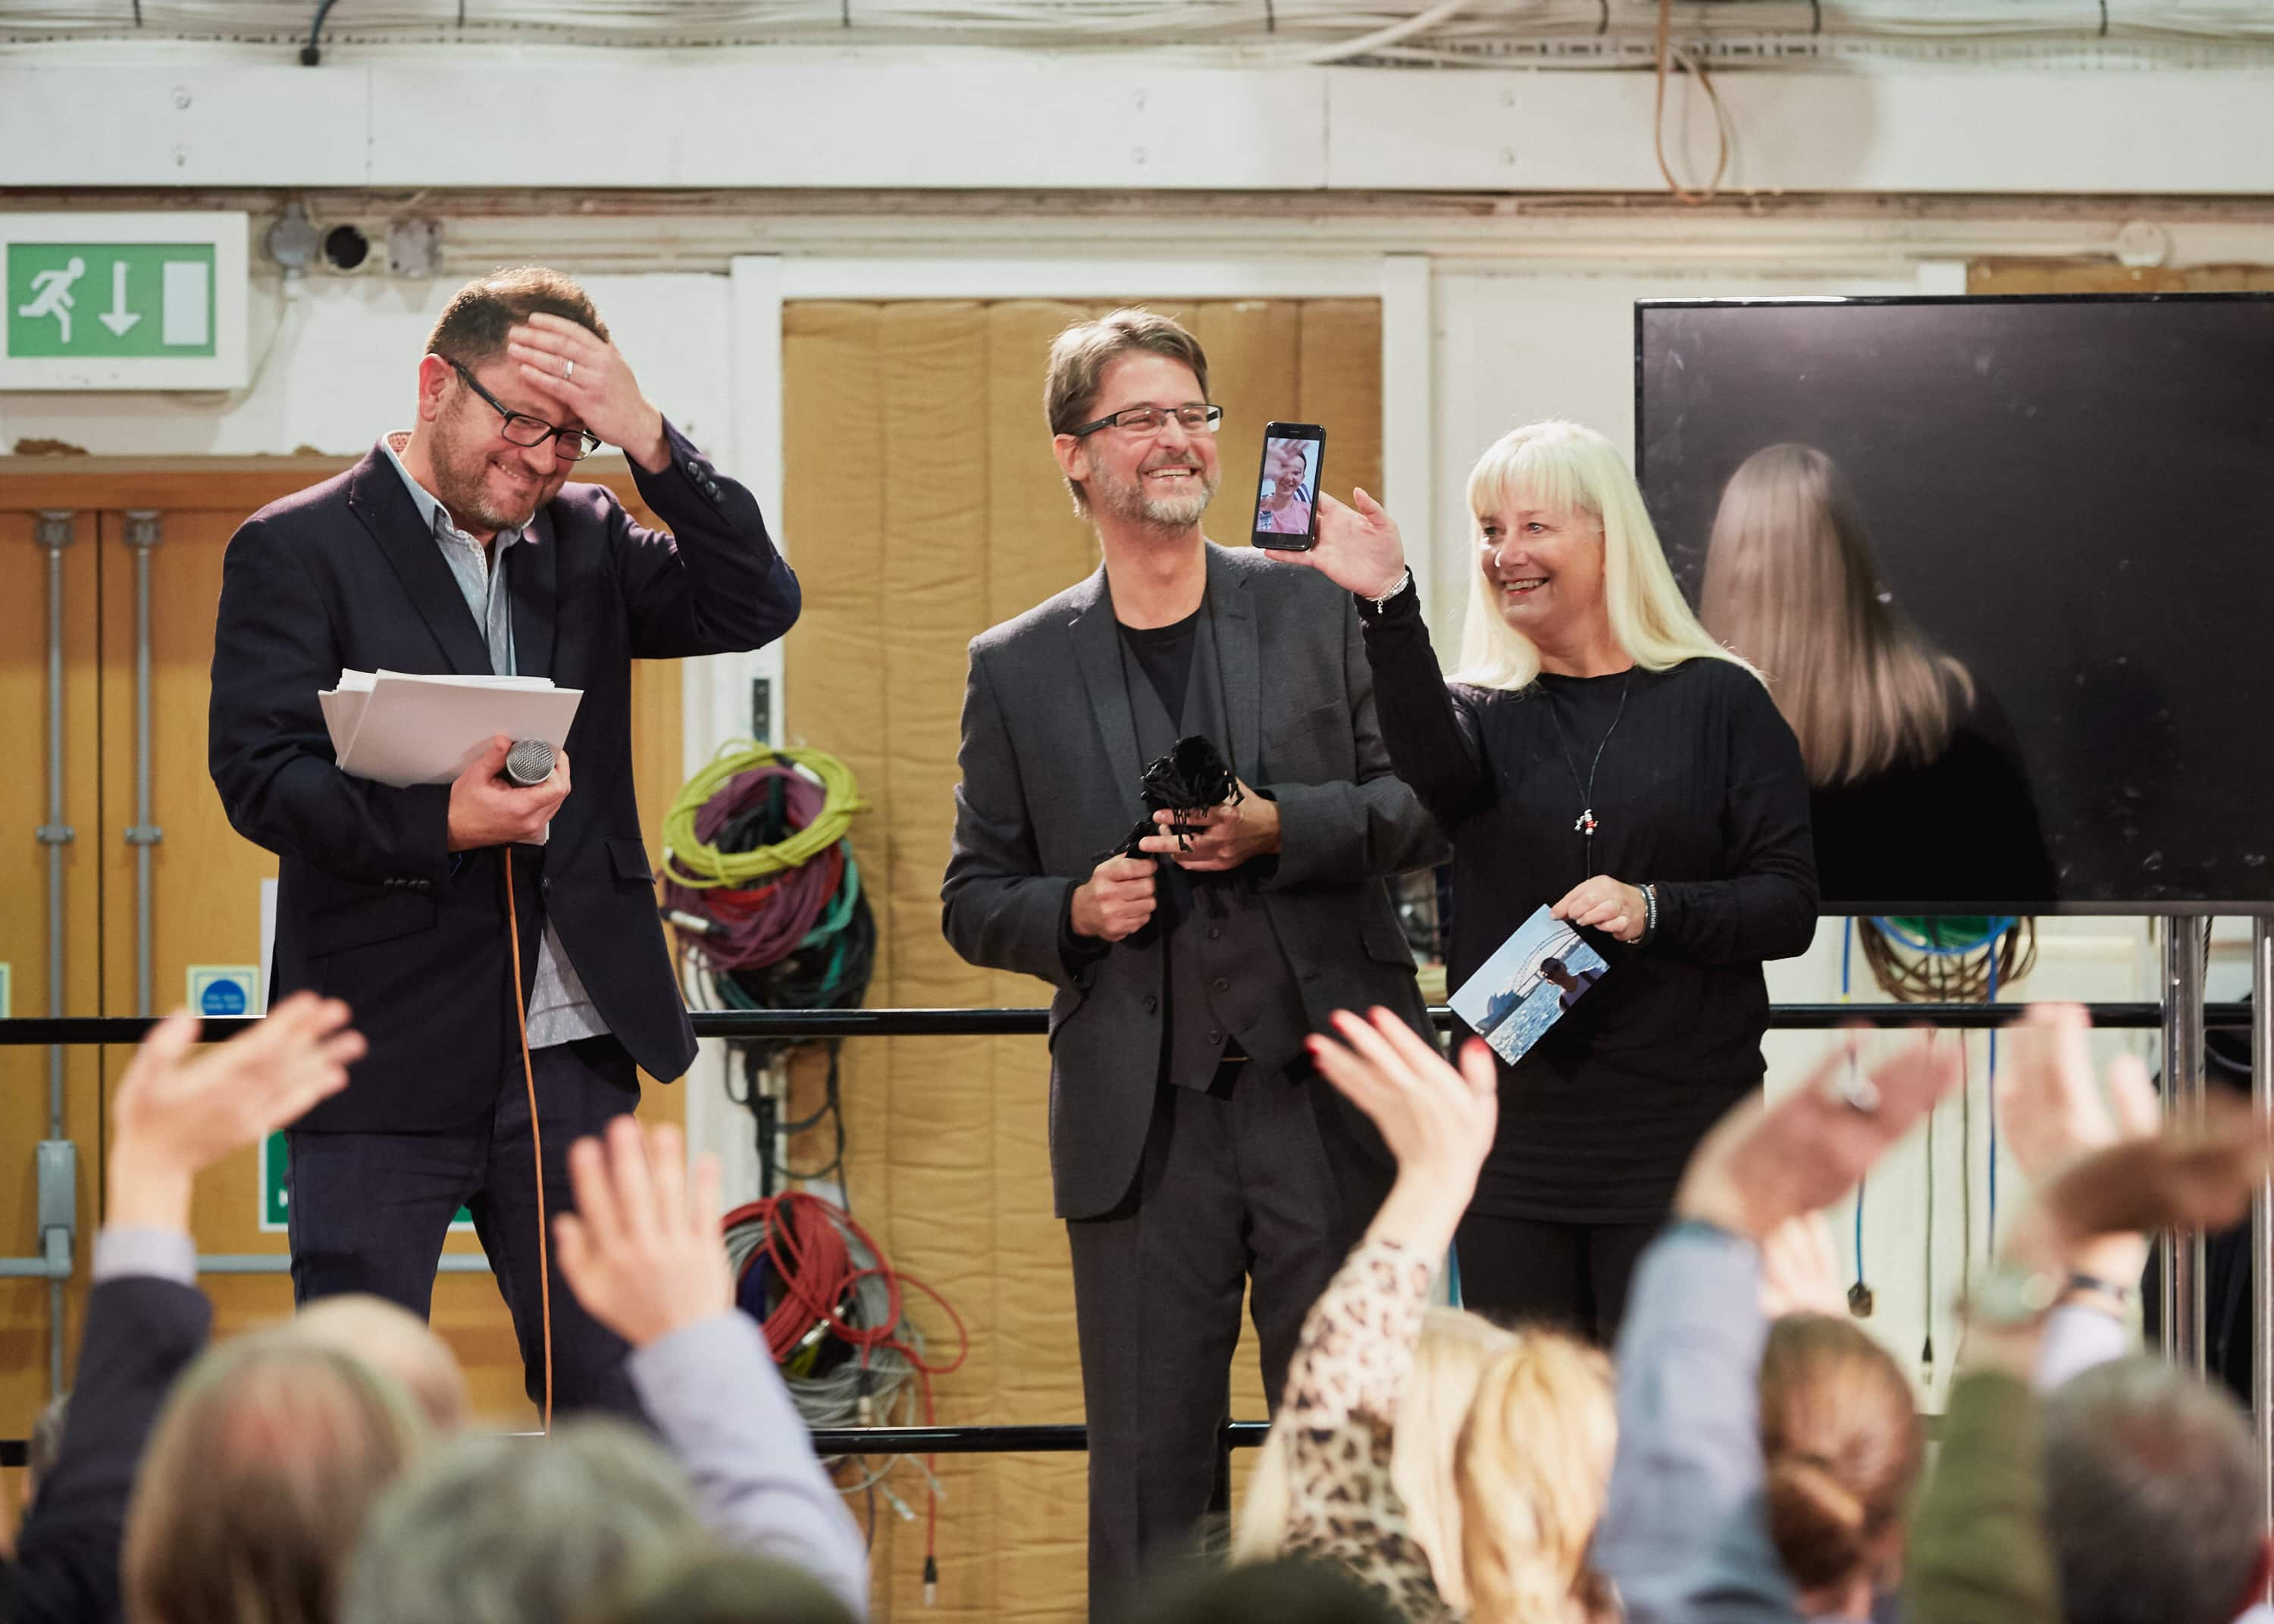 Zak's mother with Zak on Facetime receiving his diploma from Abbey Road Institute campus manager Mike Sinnott and programme director Carlos Lellis.